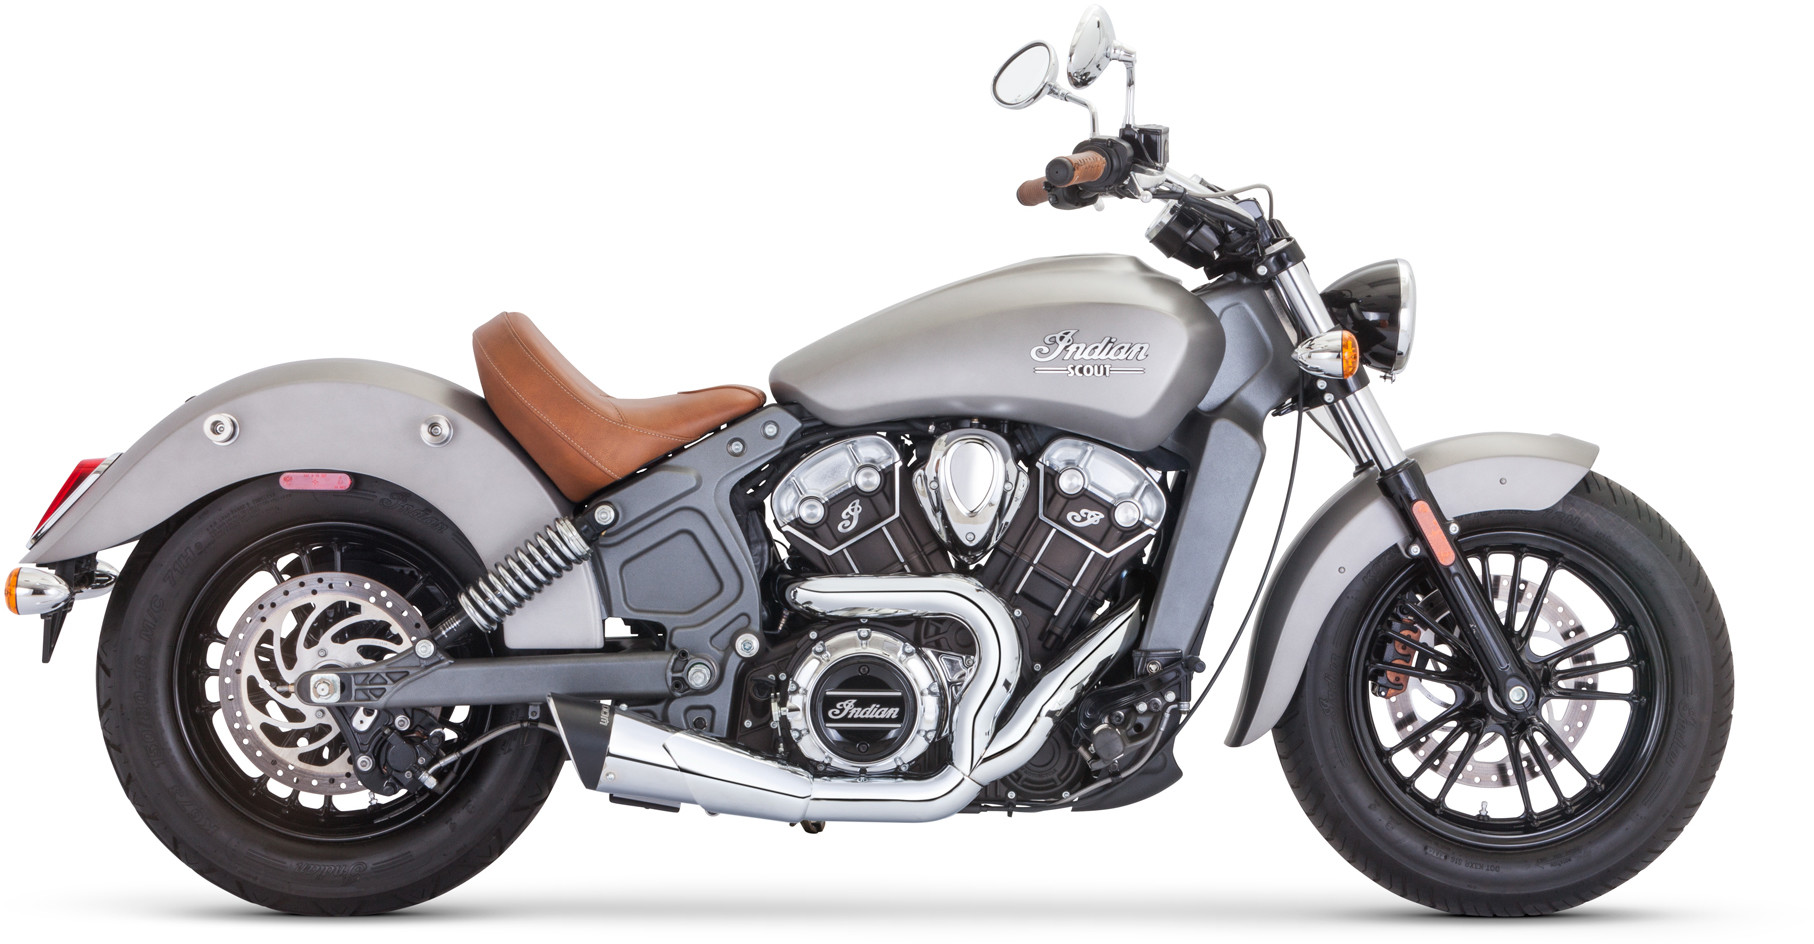 https dynamiccycleparts com product freedom scout combat shorty 2 into 1 exhaust chrome indian scout scout sixty scout bobber 2015 2020 2